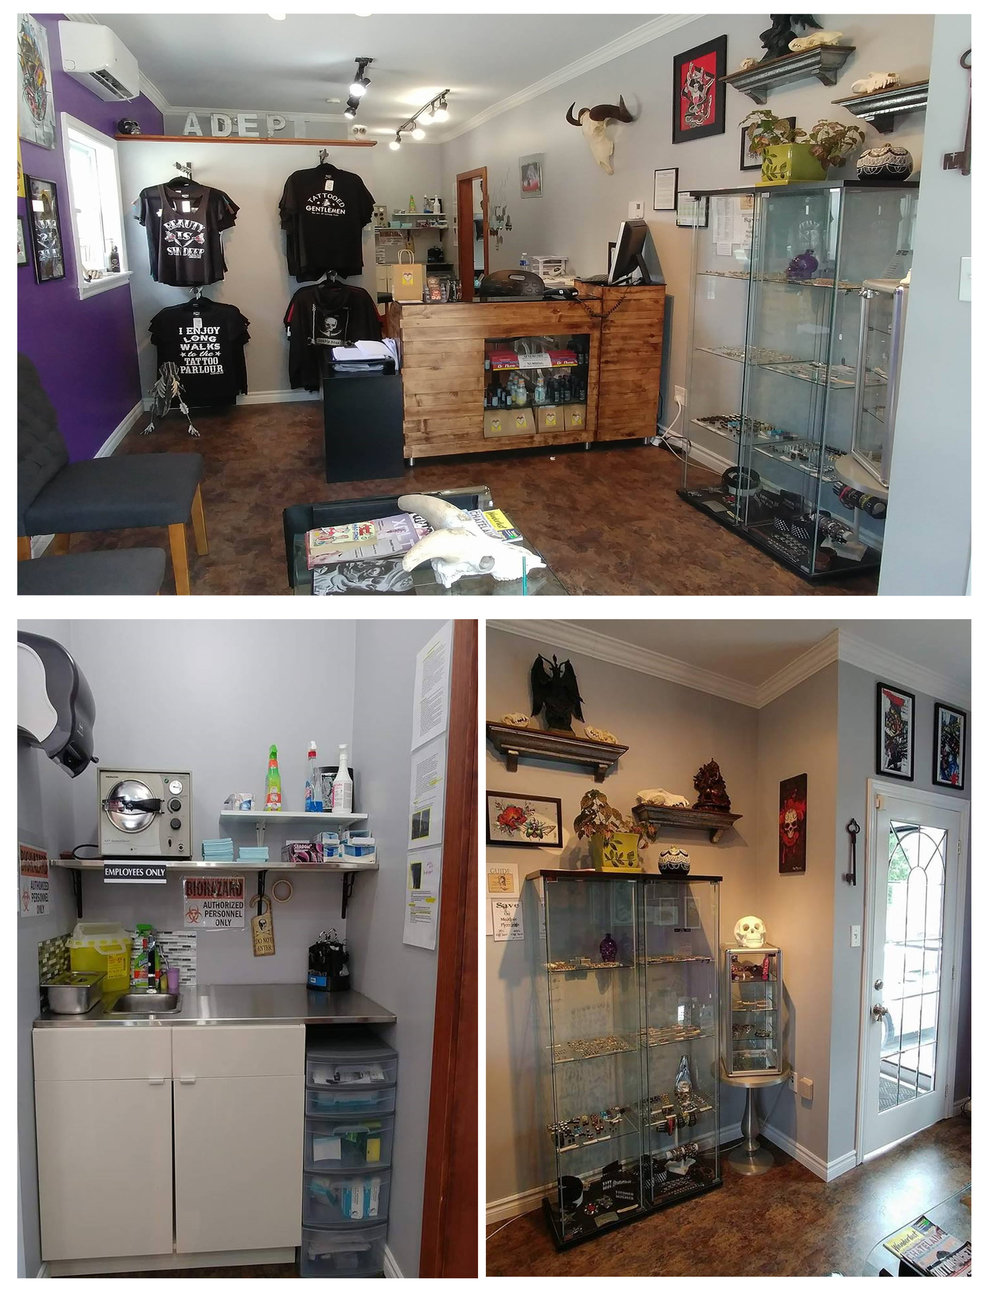 Adept Tattoos and Body Piercing Bedford